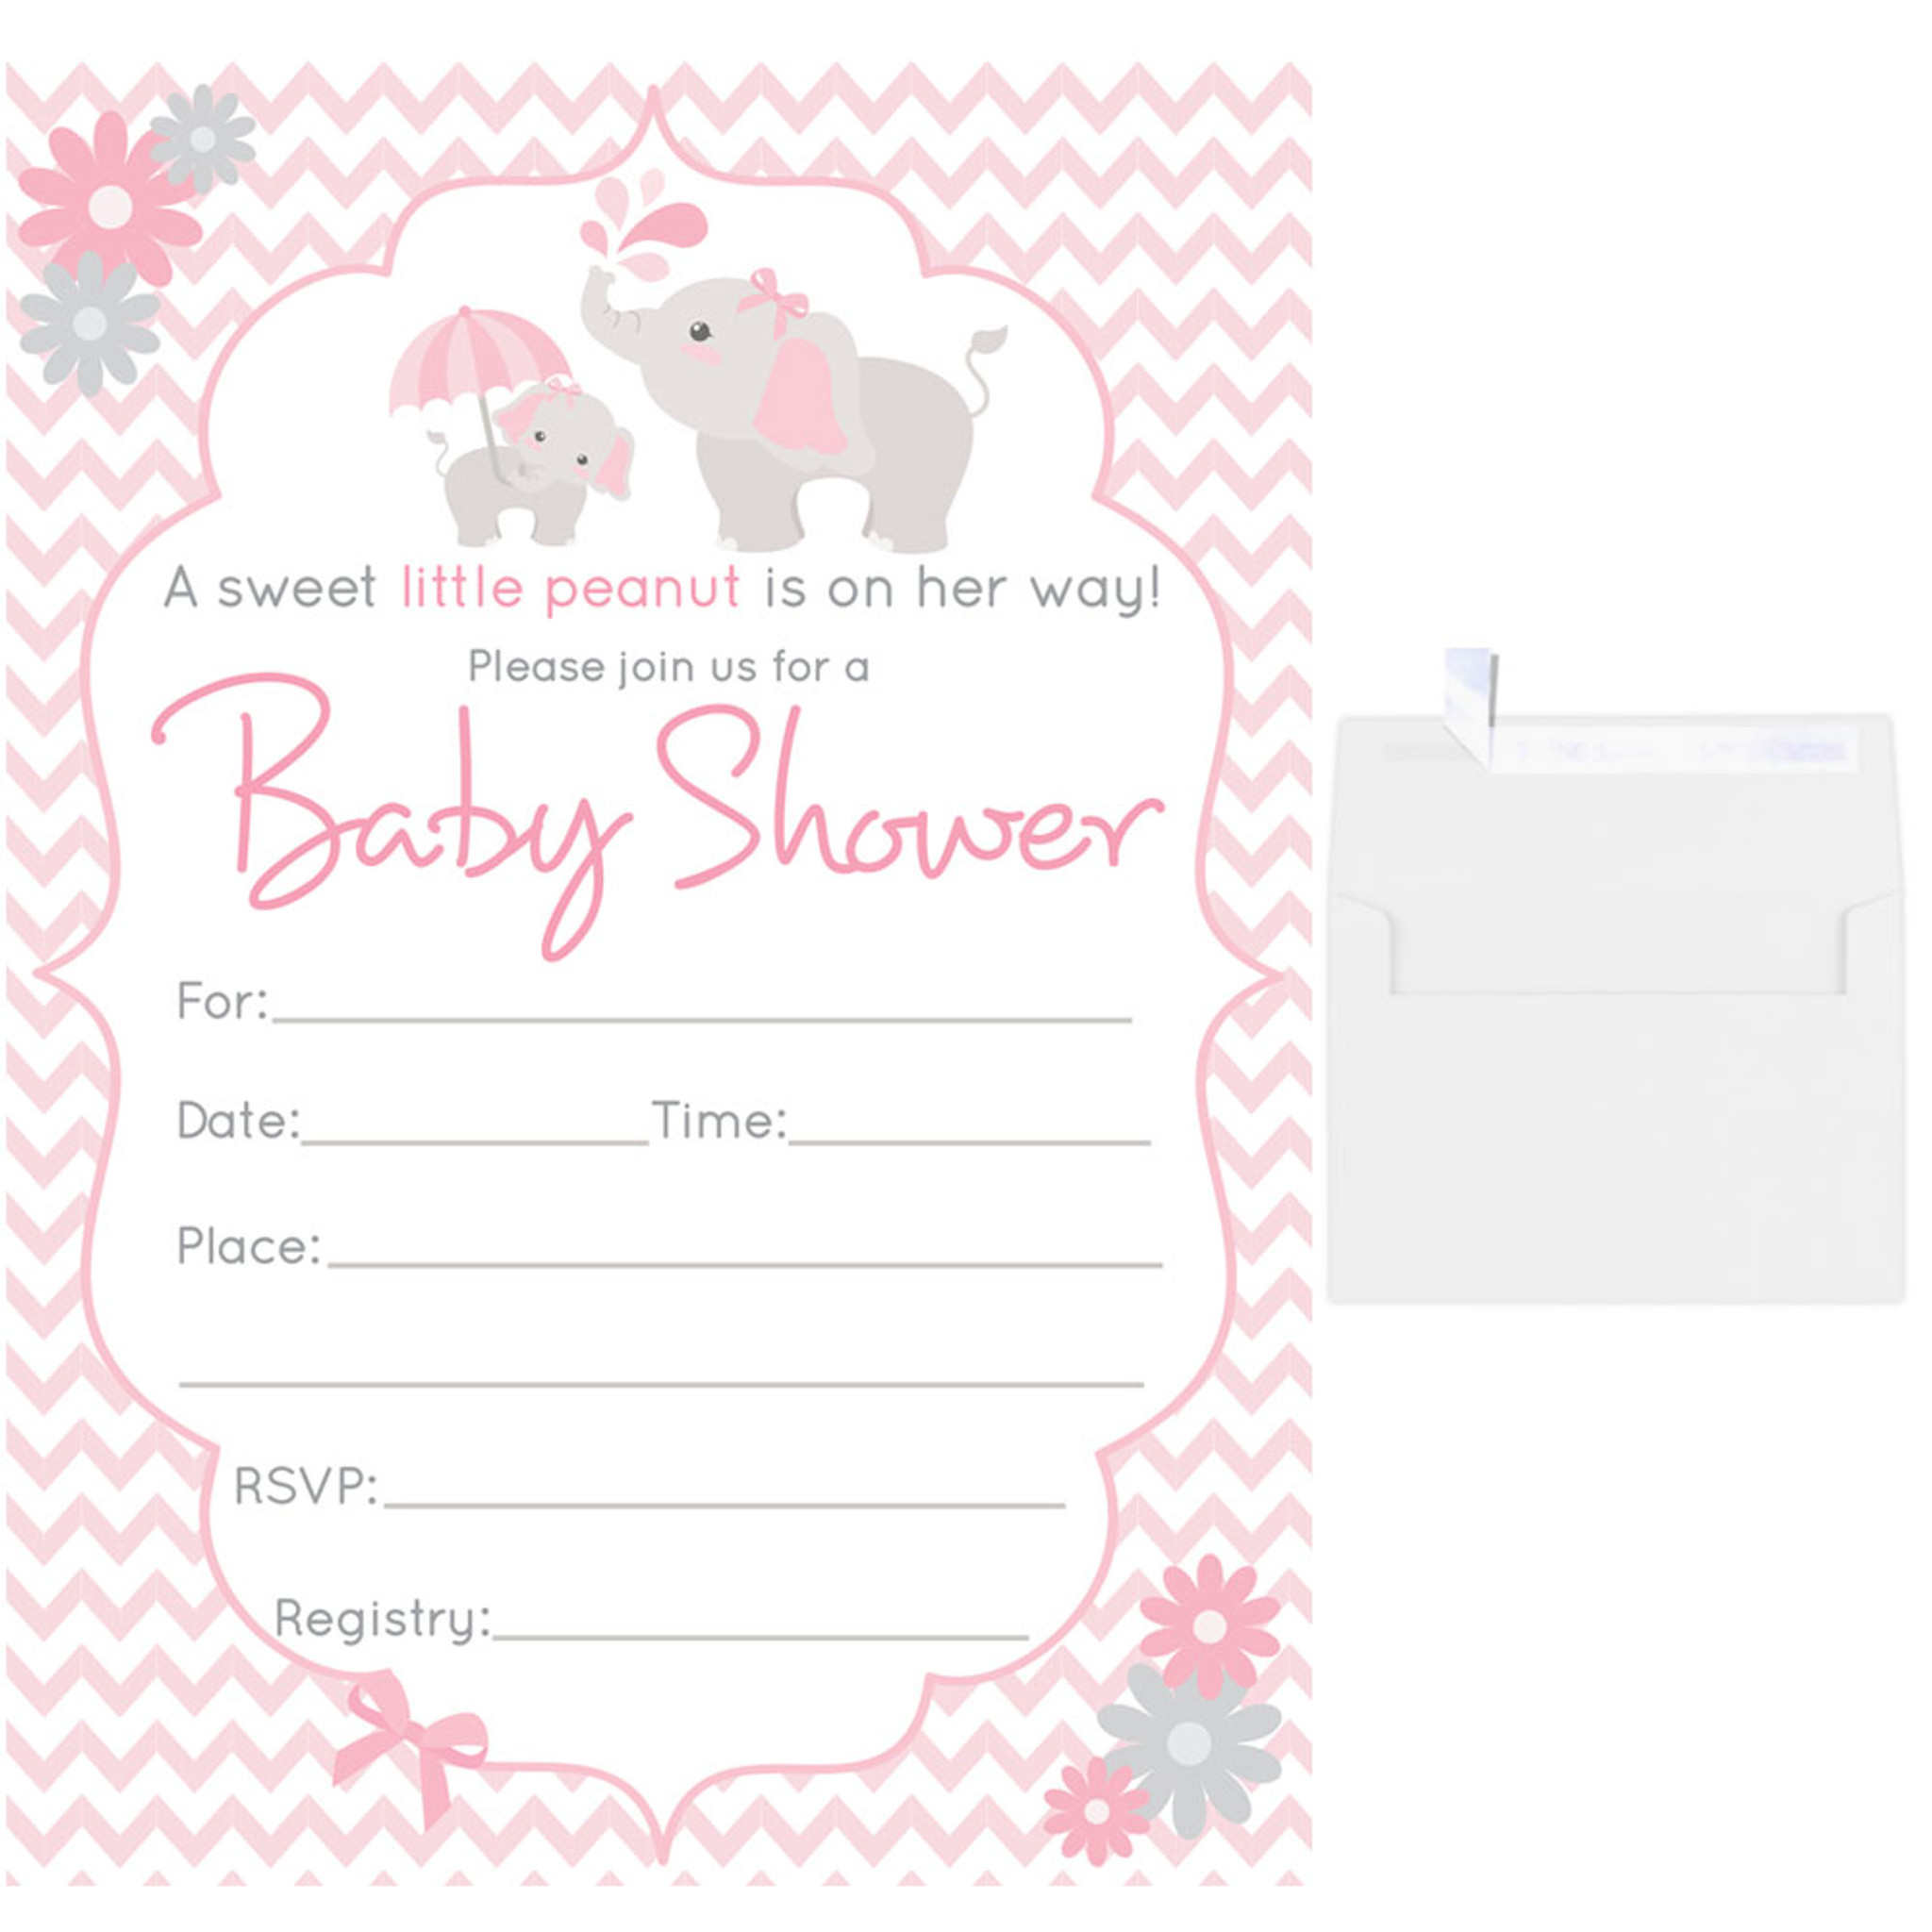 25 Fill In Blank Baby Shower Invitations W Envelopes Pink Elephant